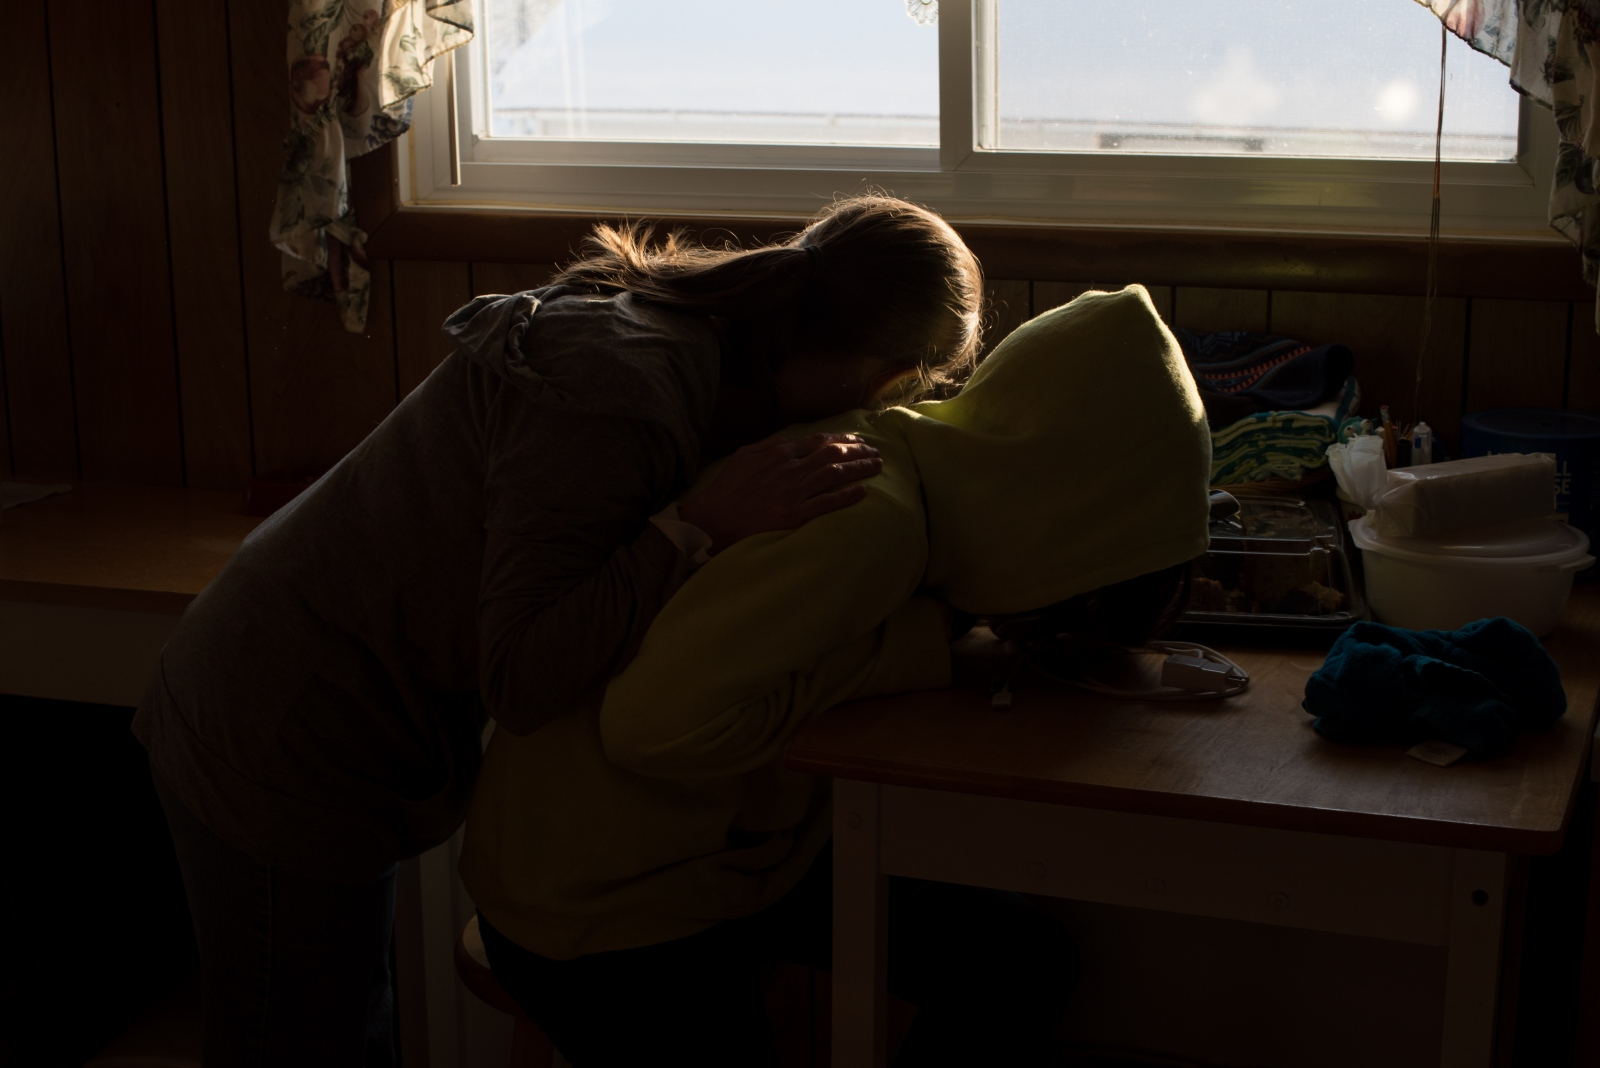 Becky Mollohan tenderly lays her head on her daughter Maddy's back in their kitchen one afternoon.